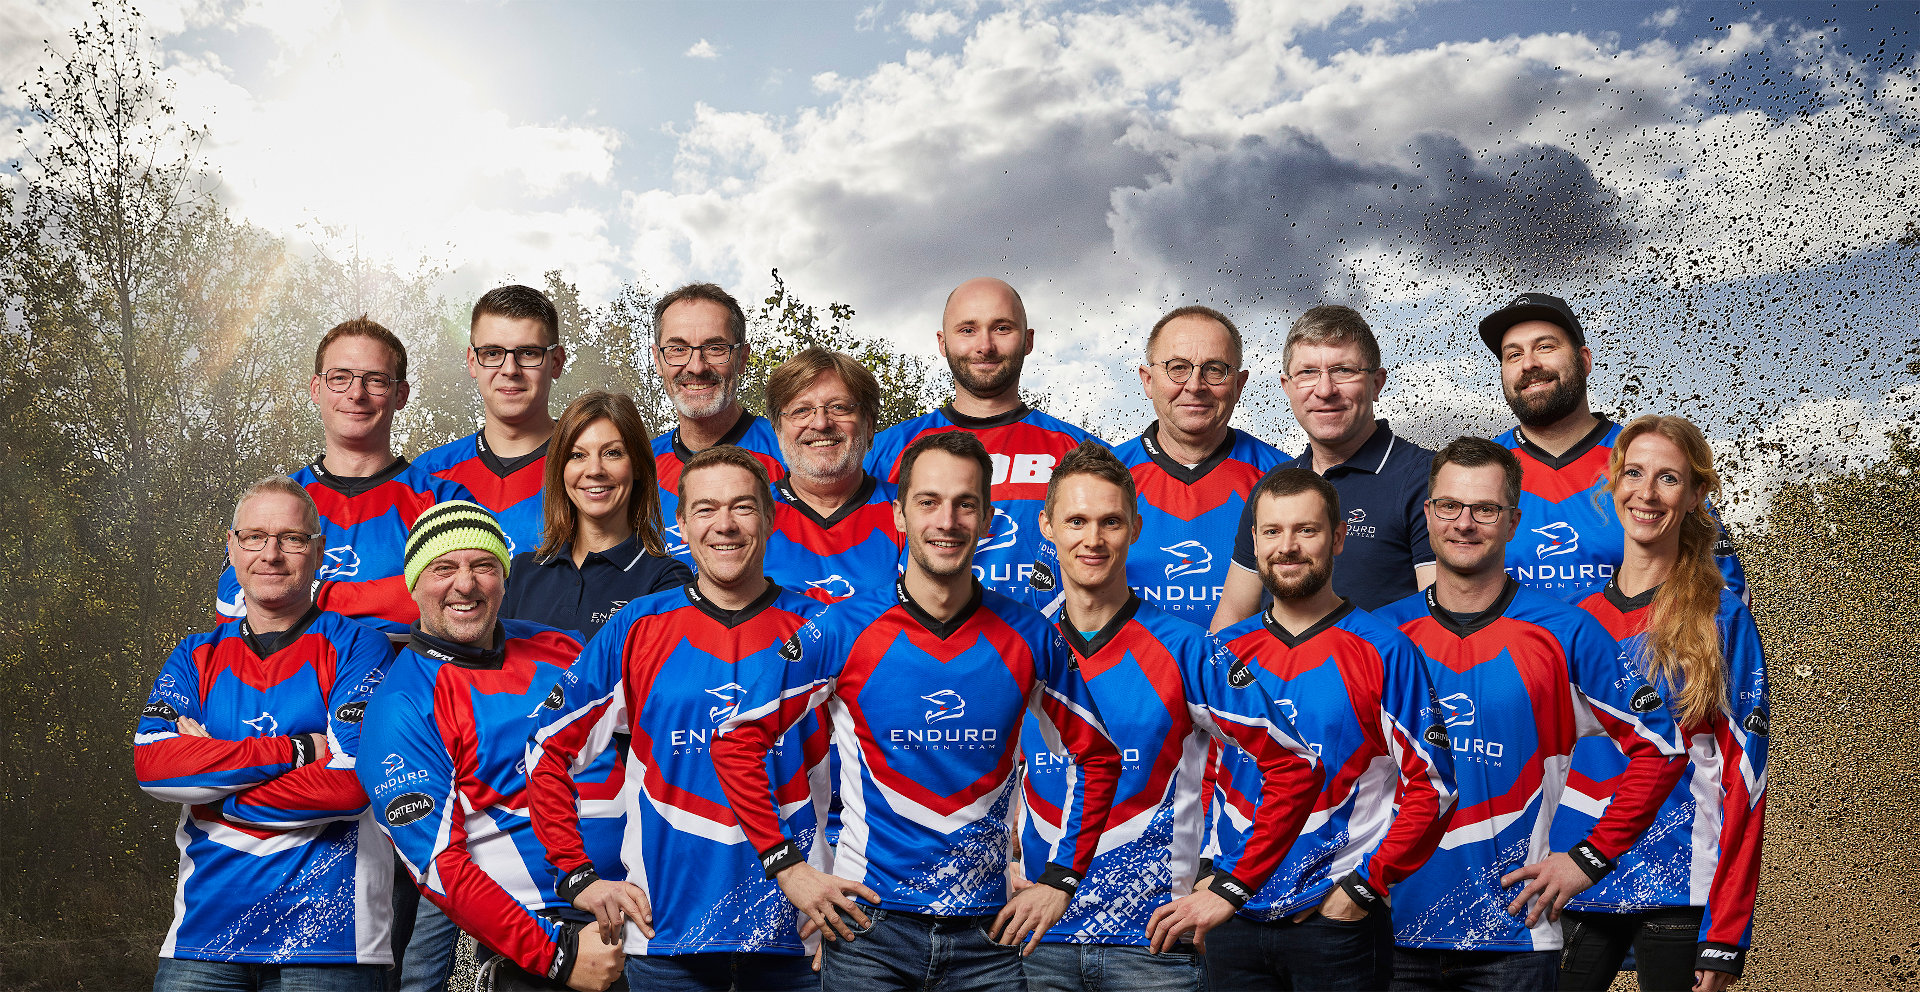 Enduro Action Team - Teamfoto 2021